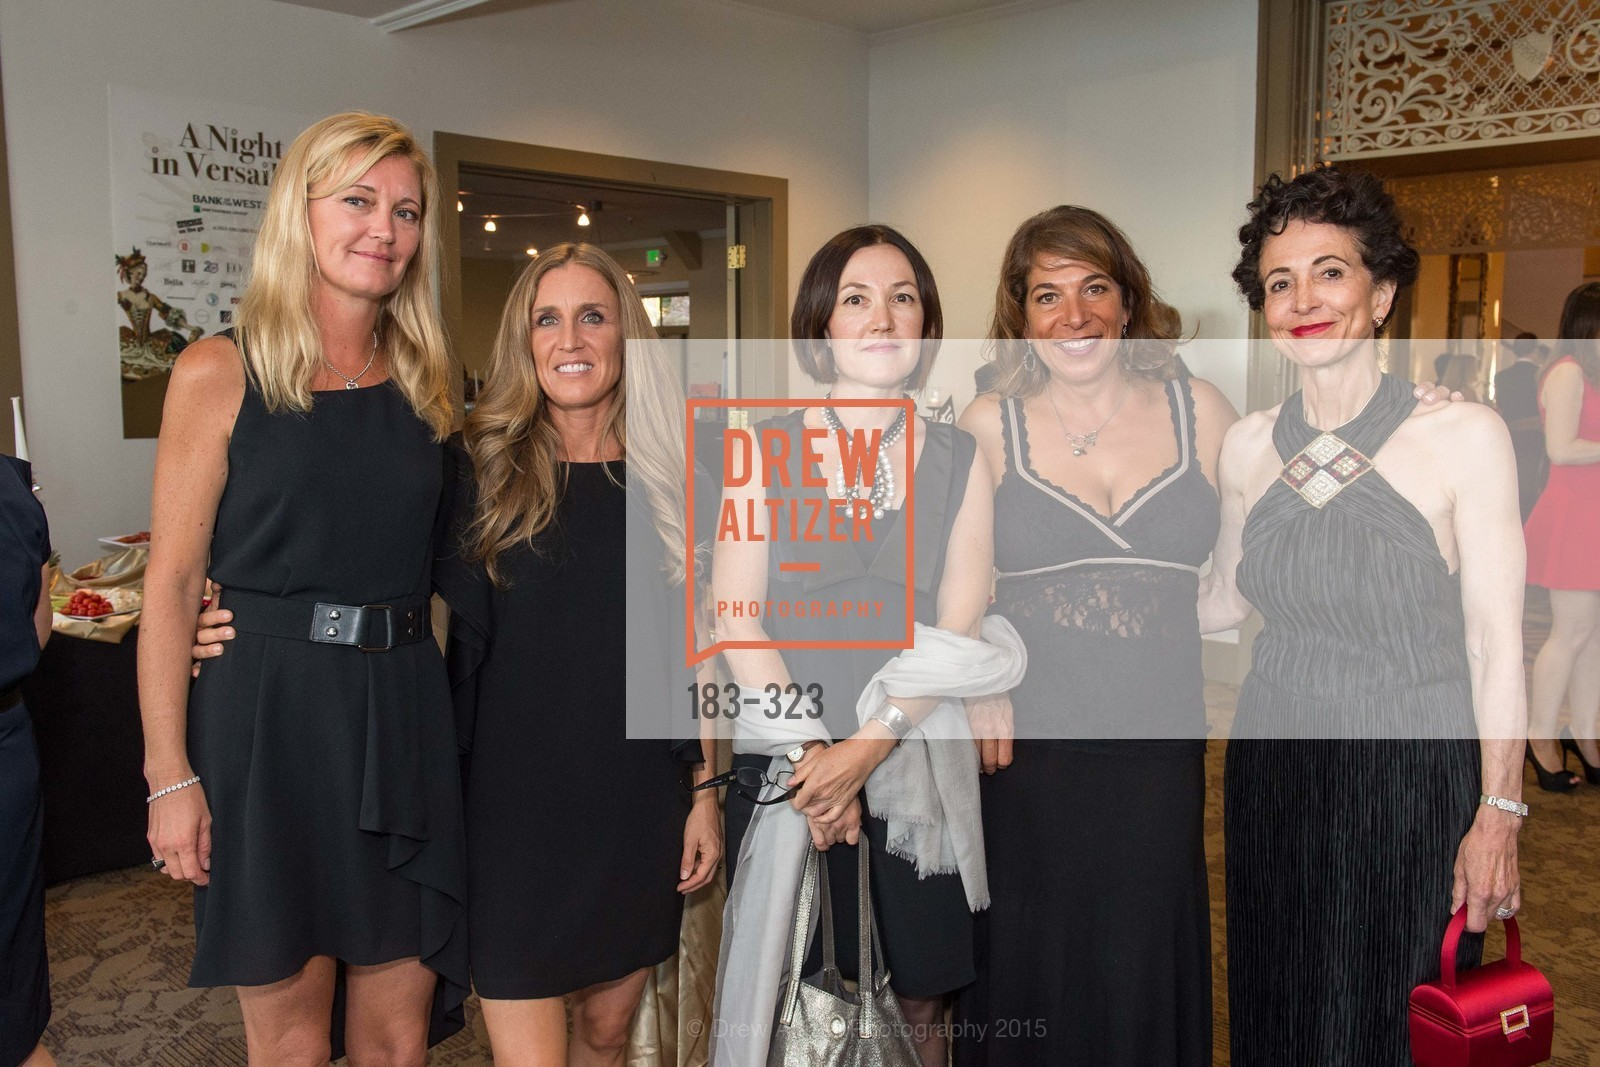 Sofia Andreoli, Delphine DePundt-Gildostath, Elmira Mazhmudimova, Giselle Sponholtz, Marissa McGinnis, A Night in Versailles, General's Residence. 1 Franklin St, September 25th, 2015,Drew Altizer, Drew Altizer Photography, full-service agency, private events, San Francisco photographer, photographer california